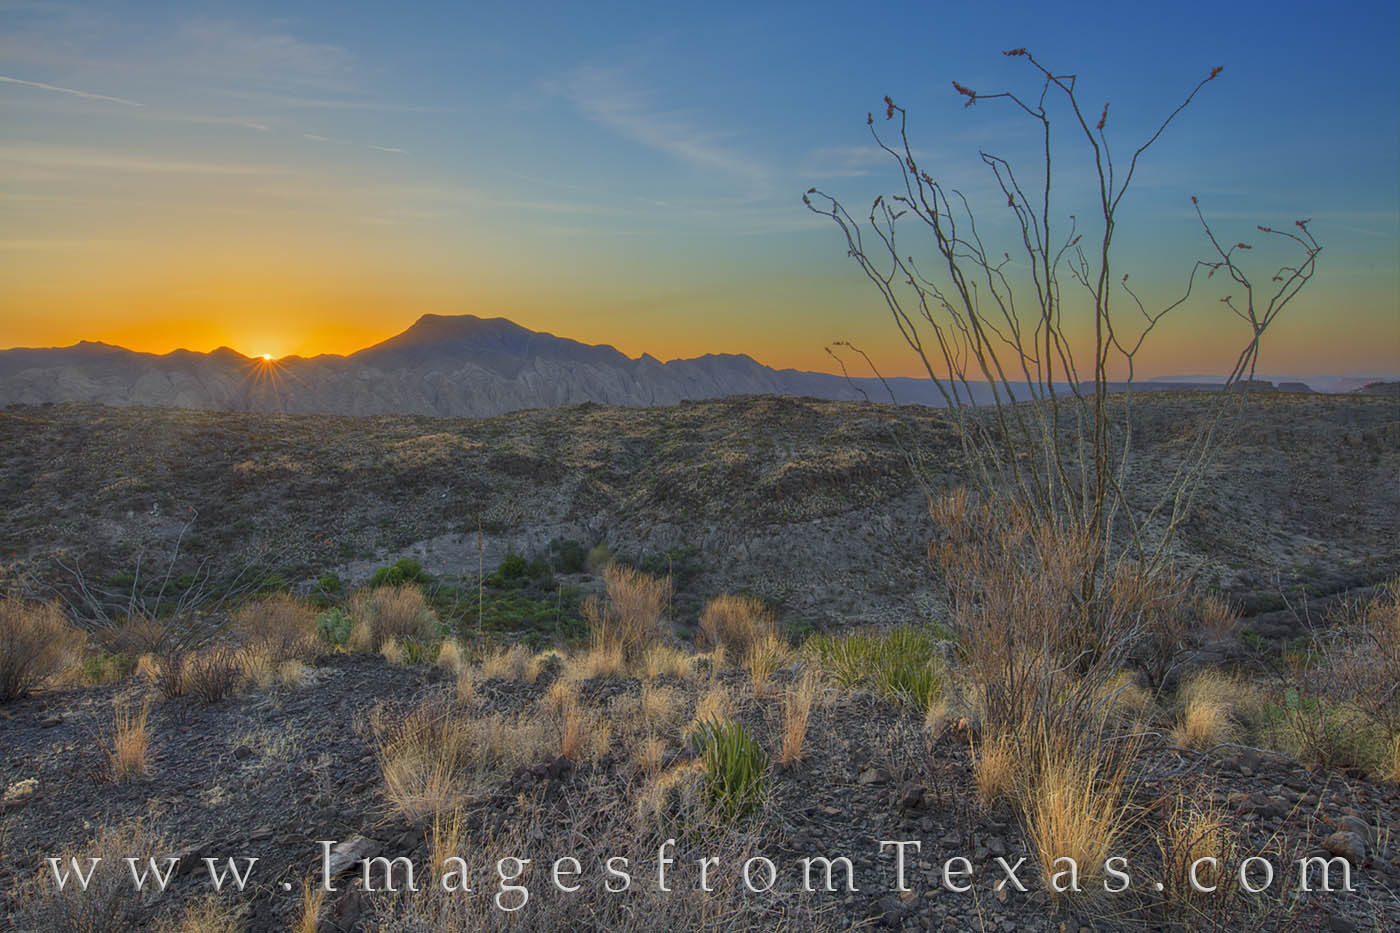 Fresno Canyon, Big Bend Ranch, hiking, solitario, flatirons, ocotillo, chihuahuan desert, fresno rim, sunrise, photo